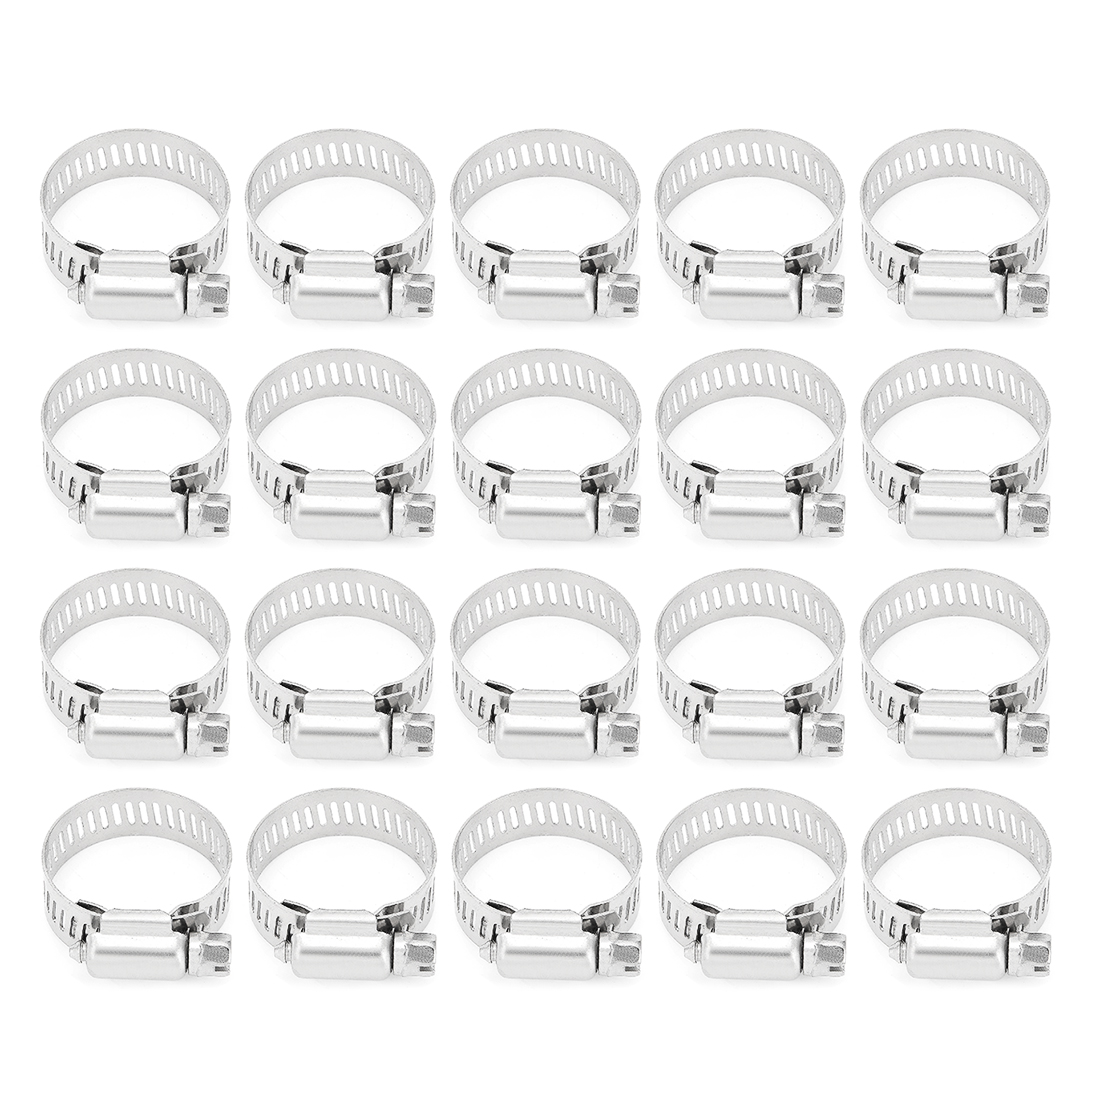 18-32mm Clamping Range 304 Stainless Steel American Worm Gear Hose Clamps 20pcs